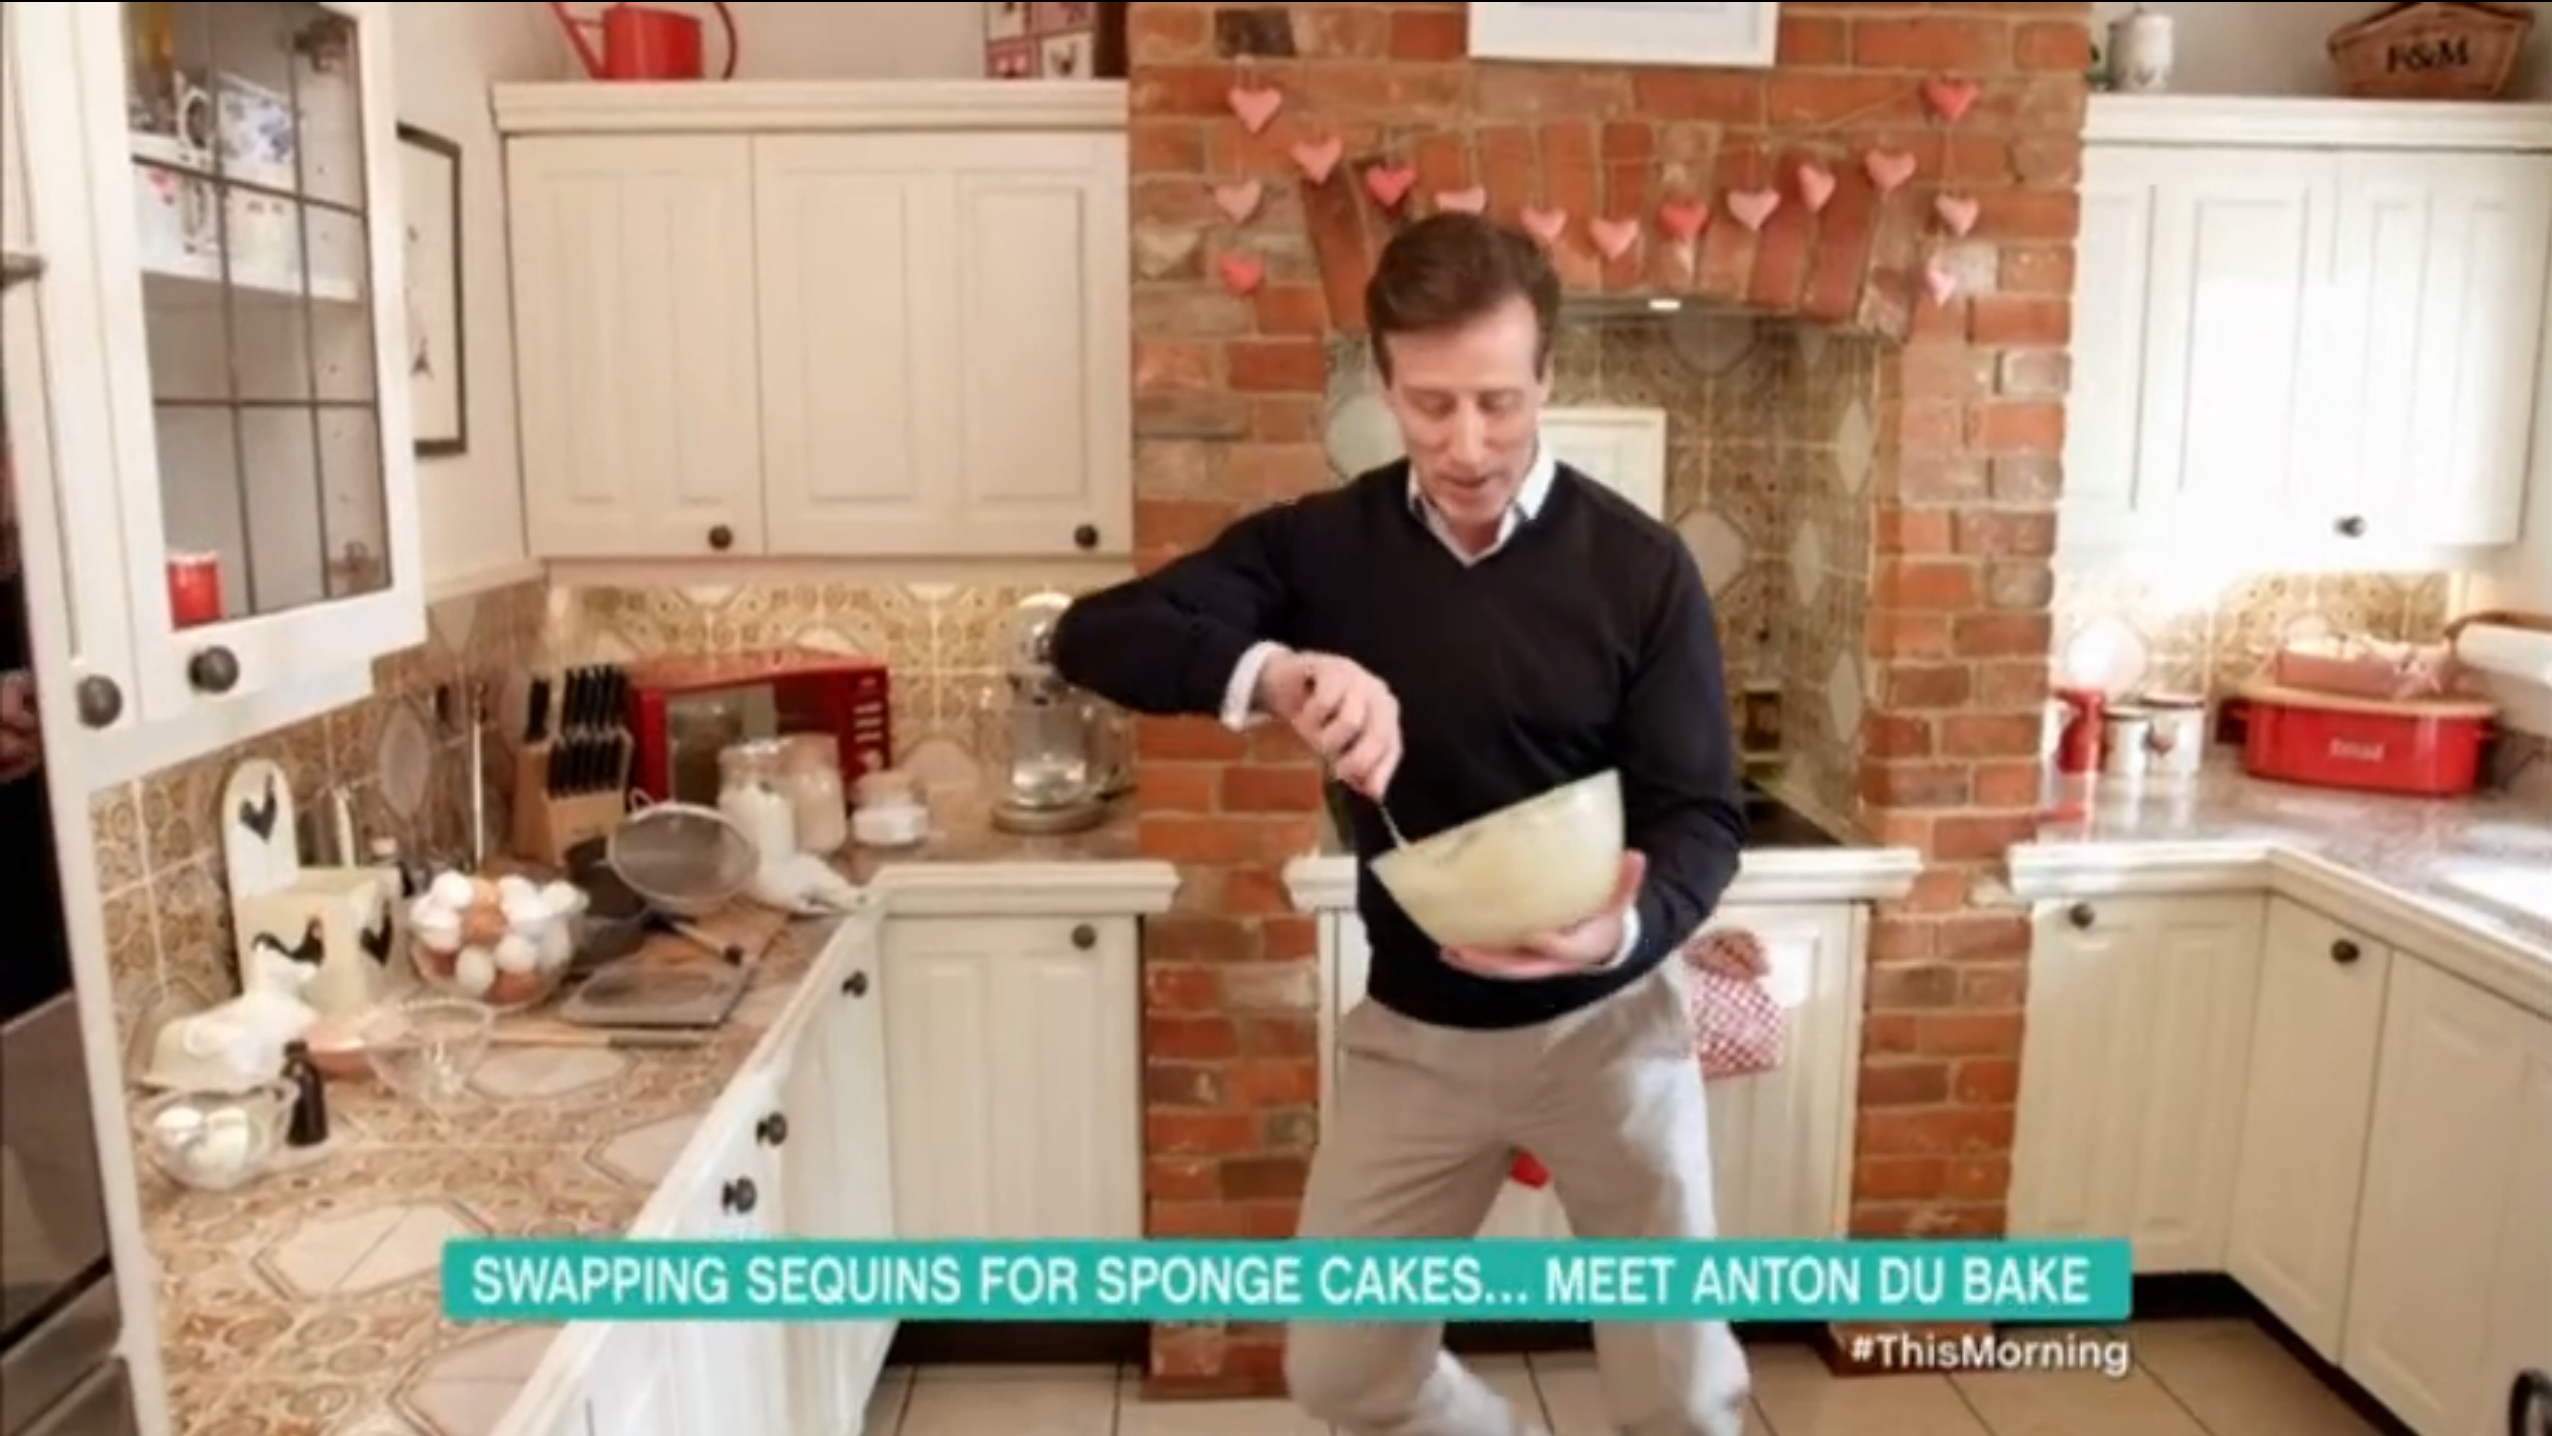 Anton du Beke This Morning baking